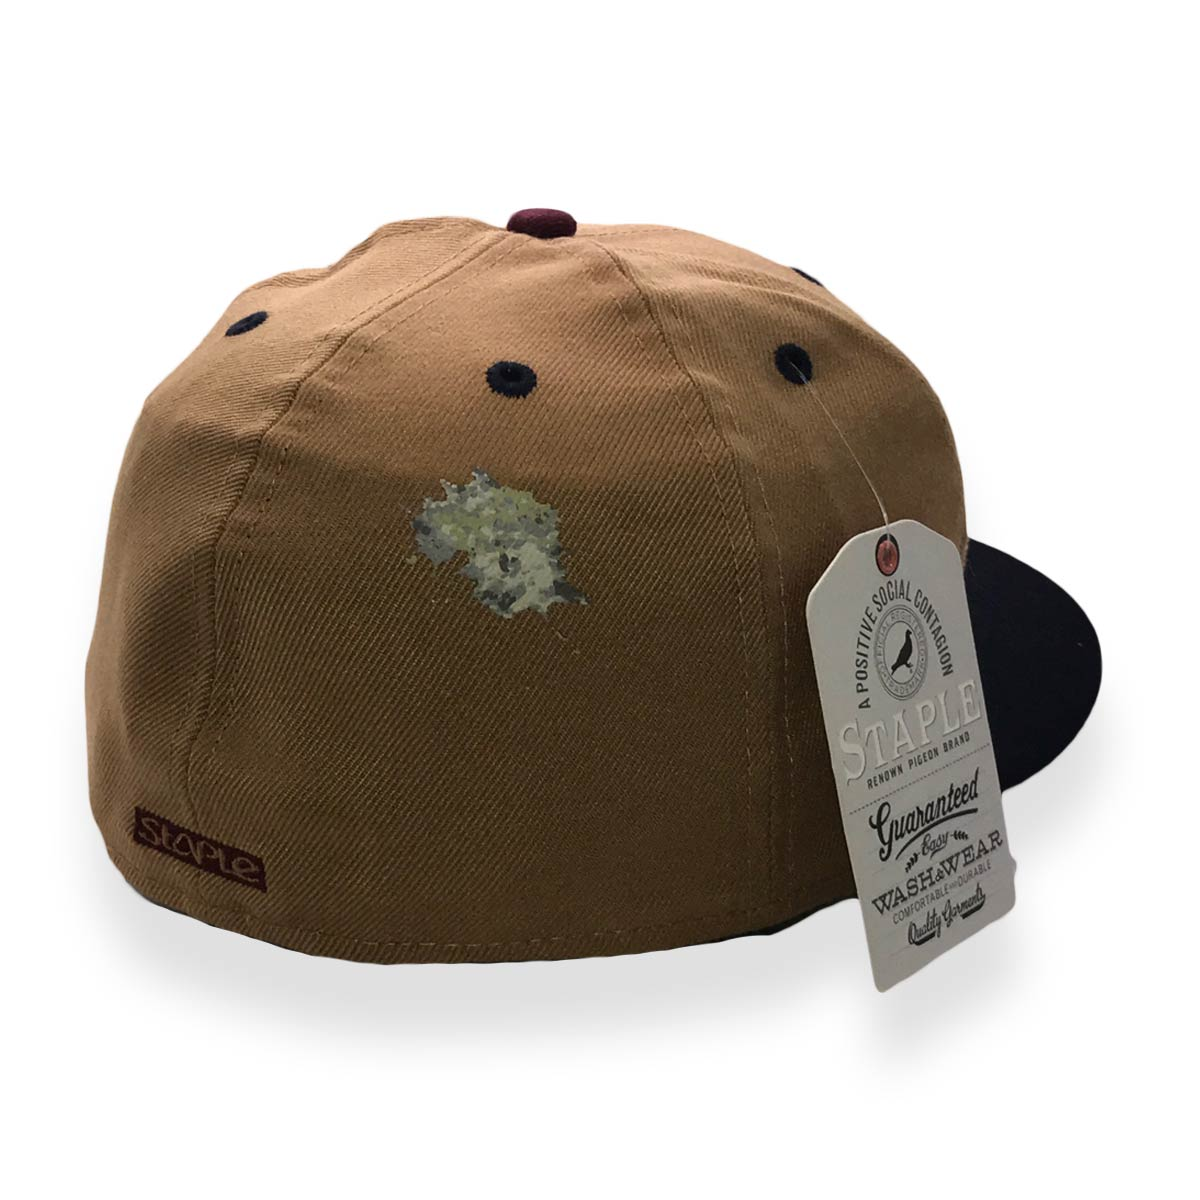 STAPLE X NEW ERA PIGEON 59FIFTY TAN MENS FITTED CAP - Last one left ... 911d5c56f0a